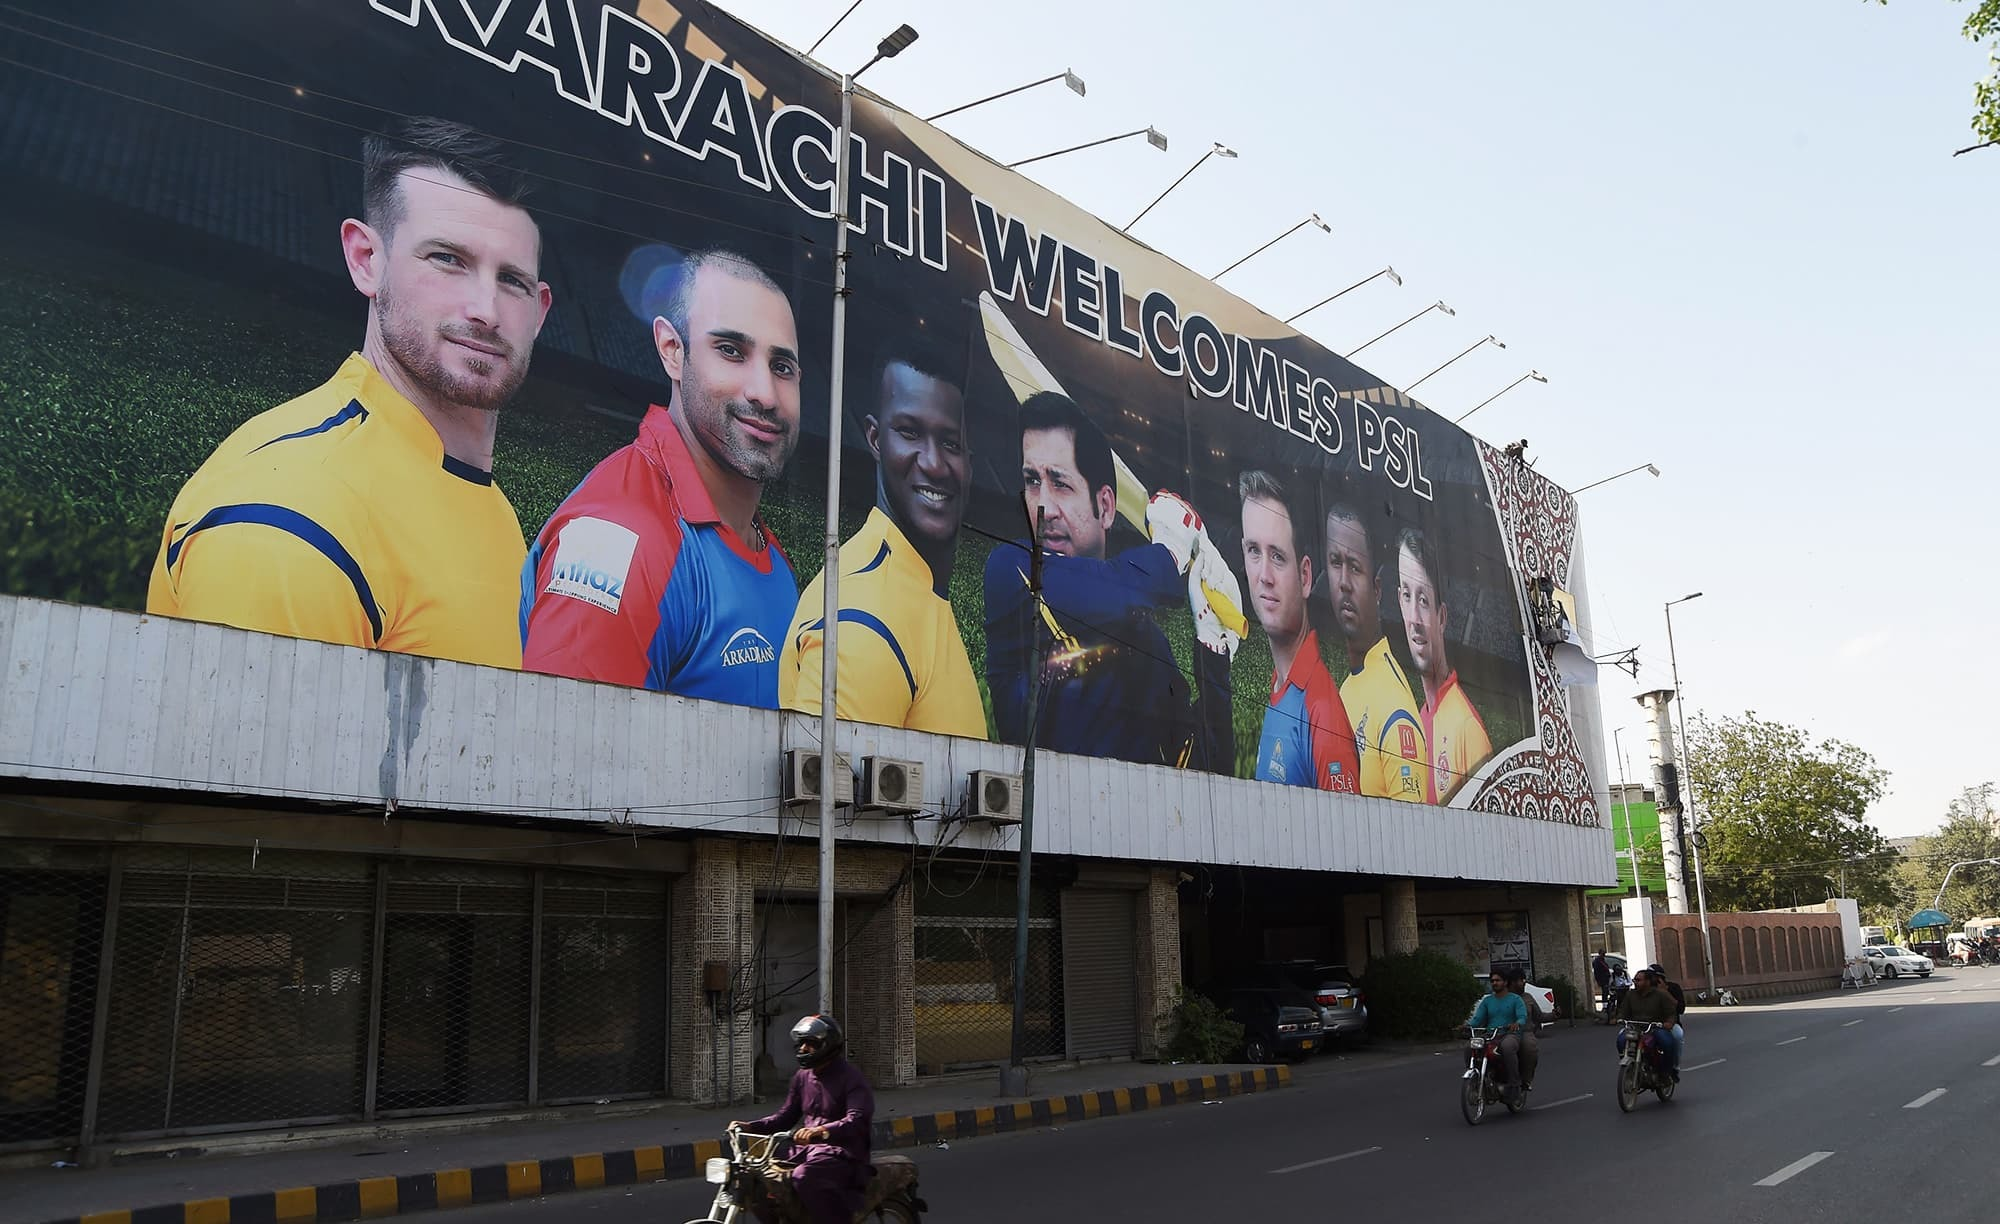 PSL tickets for Karachi, Lahore matches to go on sale online at midnight